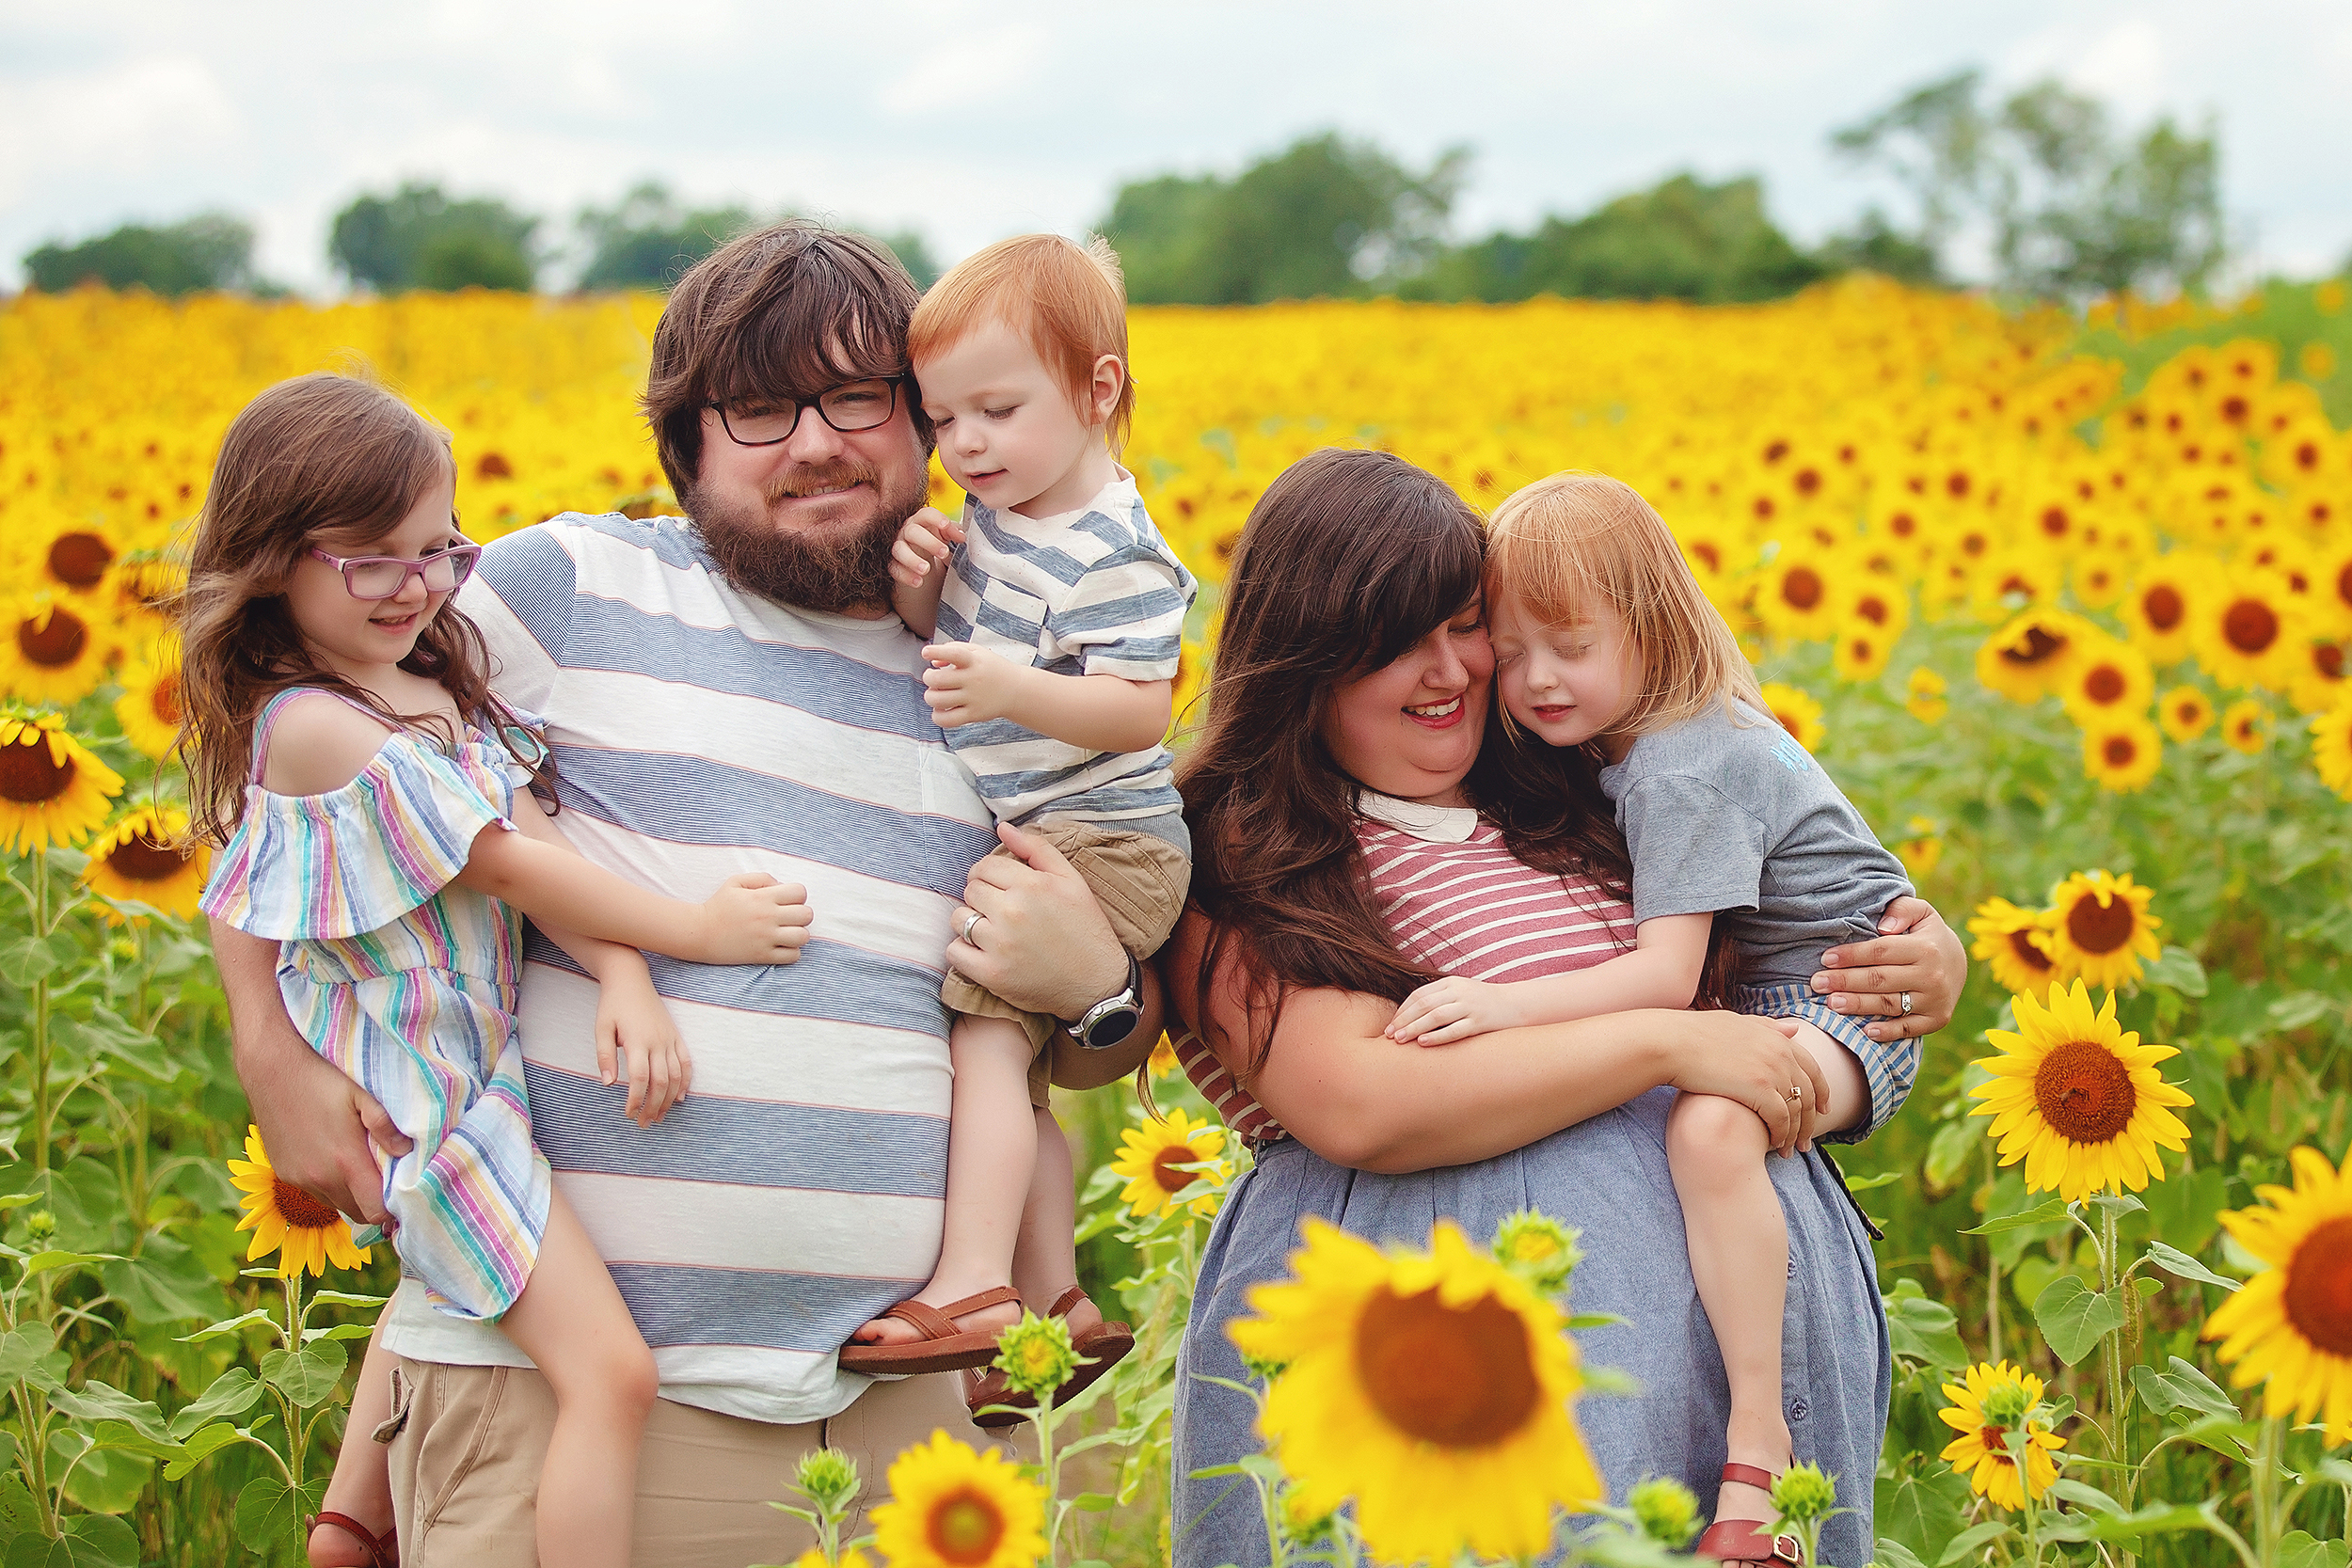 sunflower-field-familiy-photography-portrait-cleveland-akron-ohio.jpg